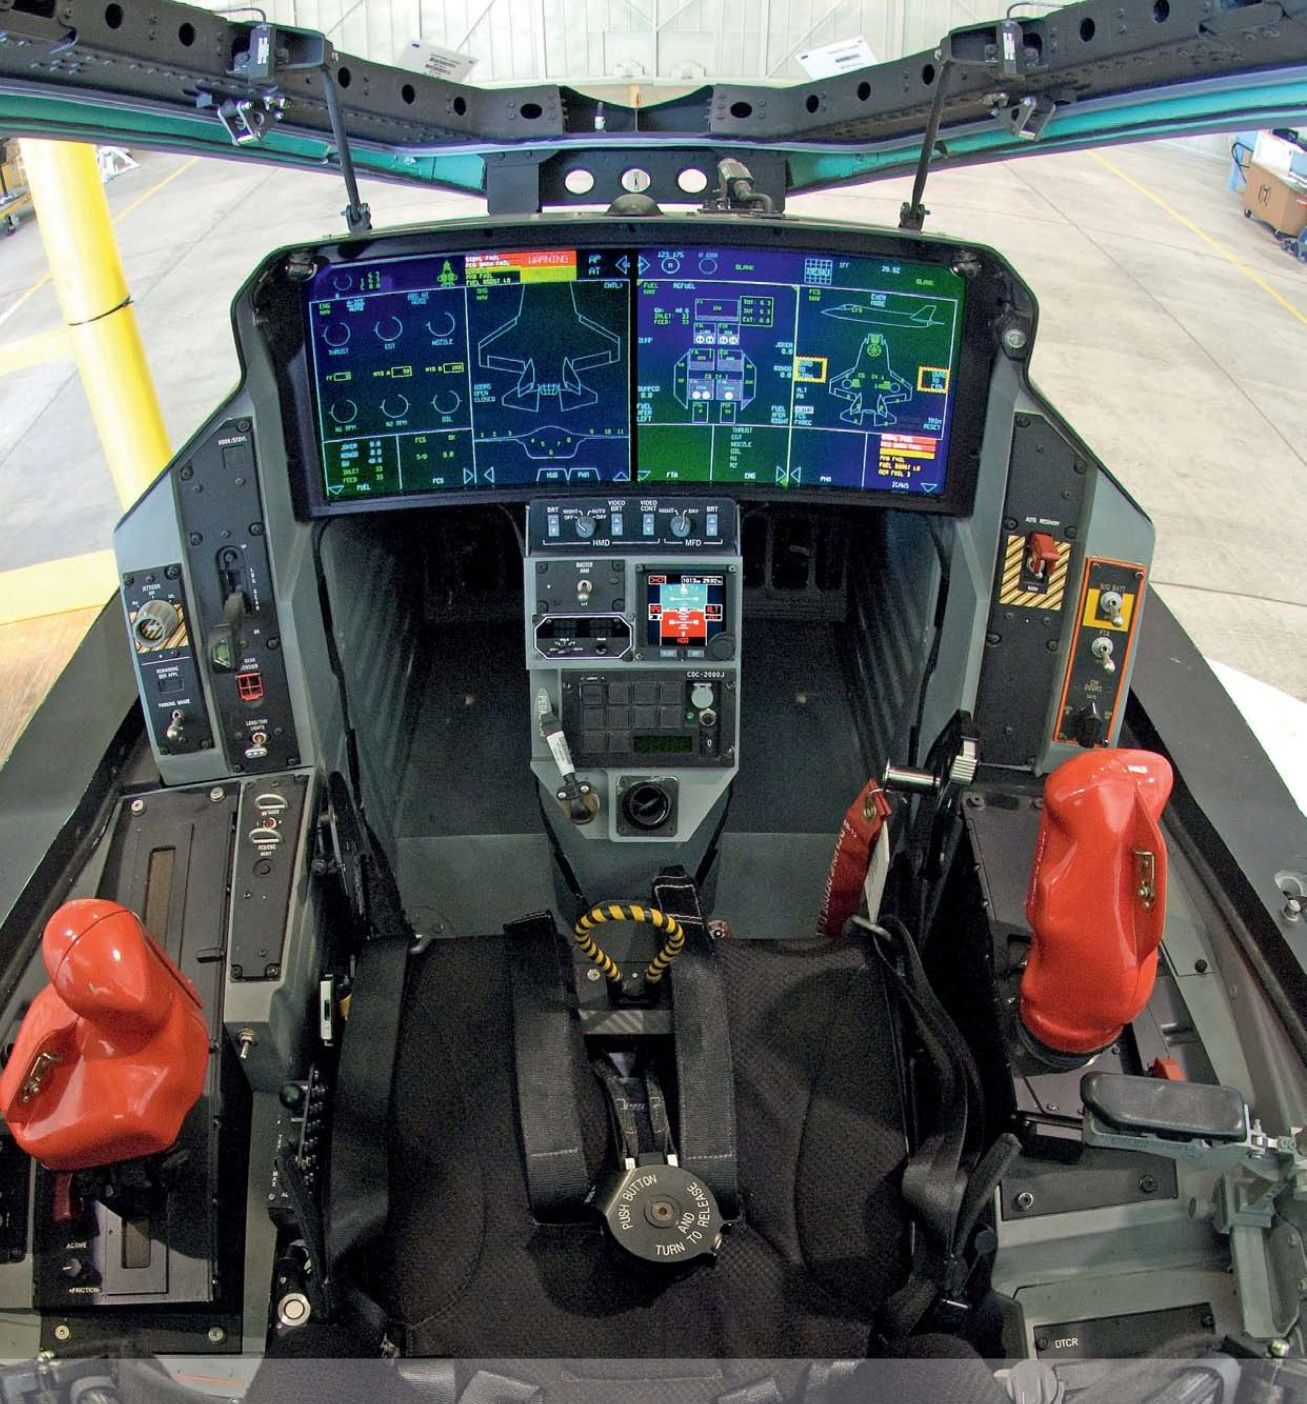 f 35 cockpit f 35 pinterest aircraft aviation and planes. Black Bedroom Furniture Sets. Home Design Ideas